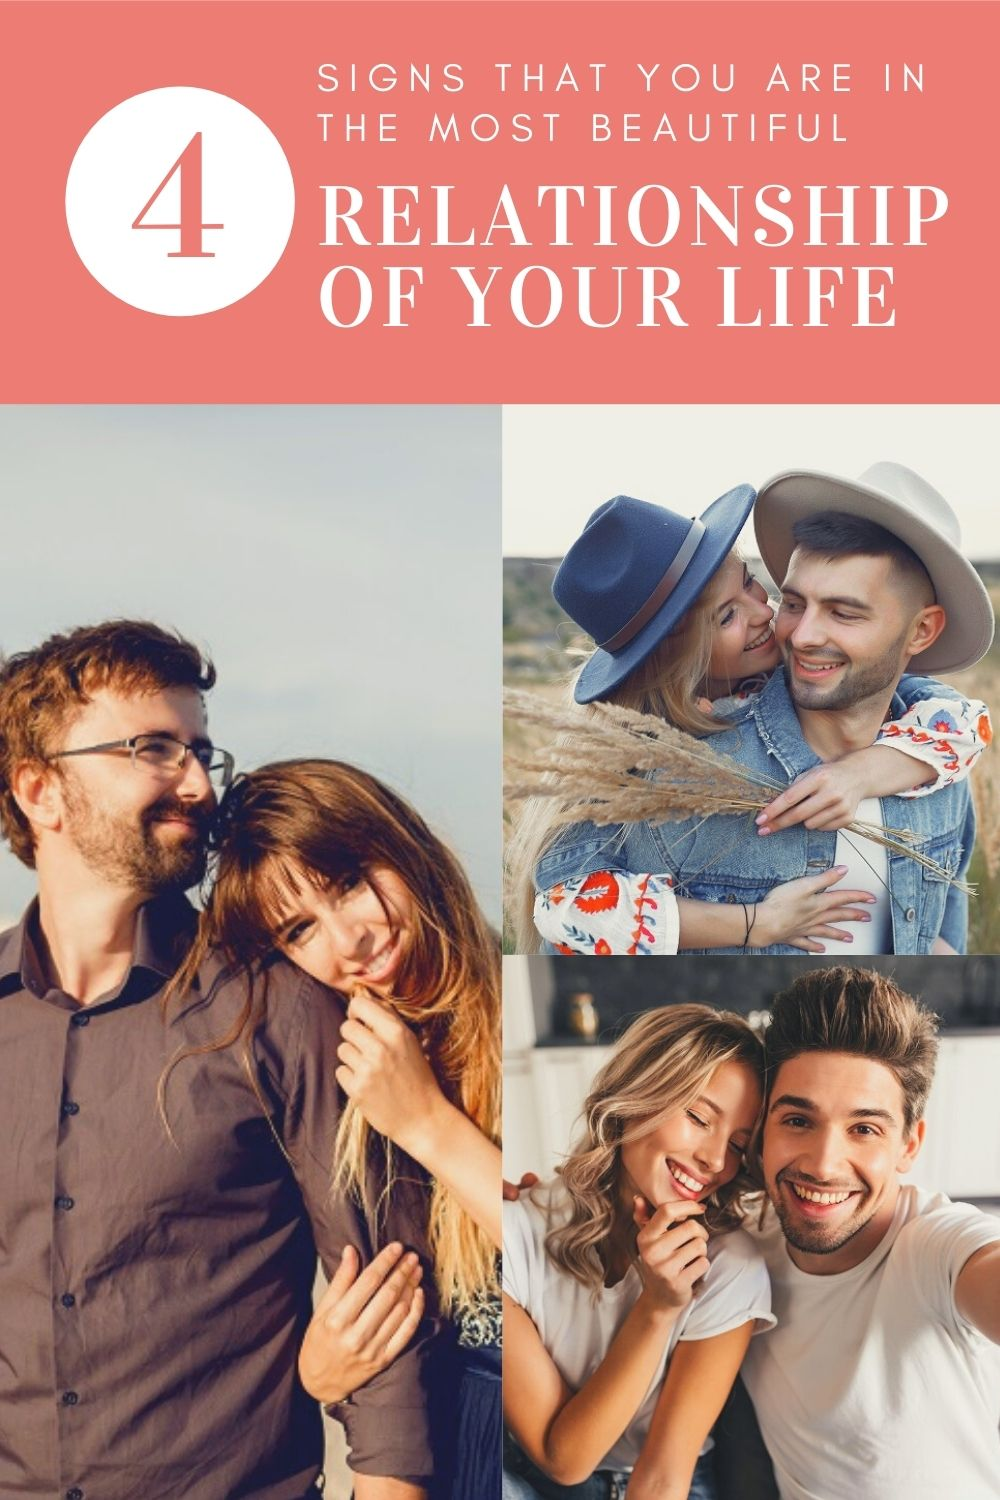 4 signs that you are in the most beautiful relationship of your life